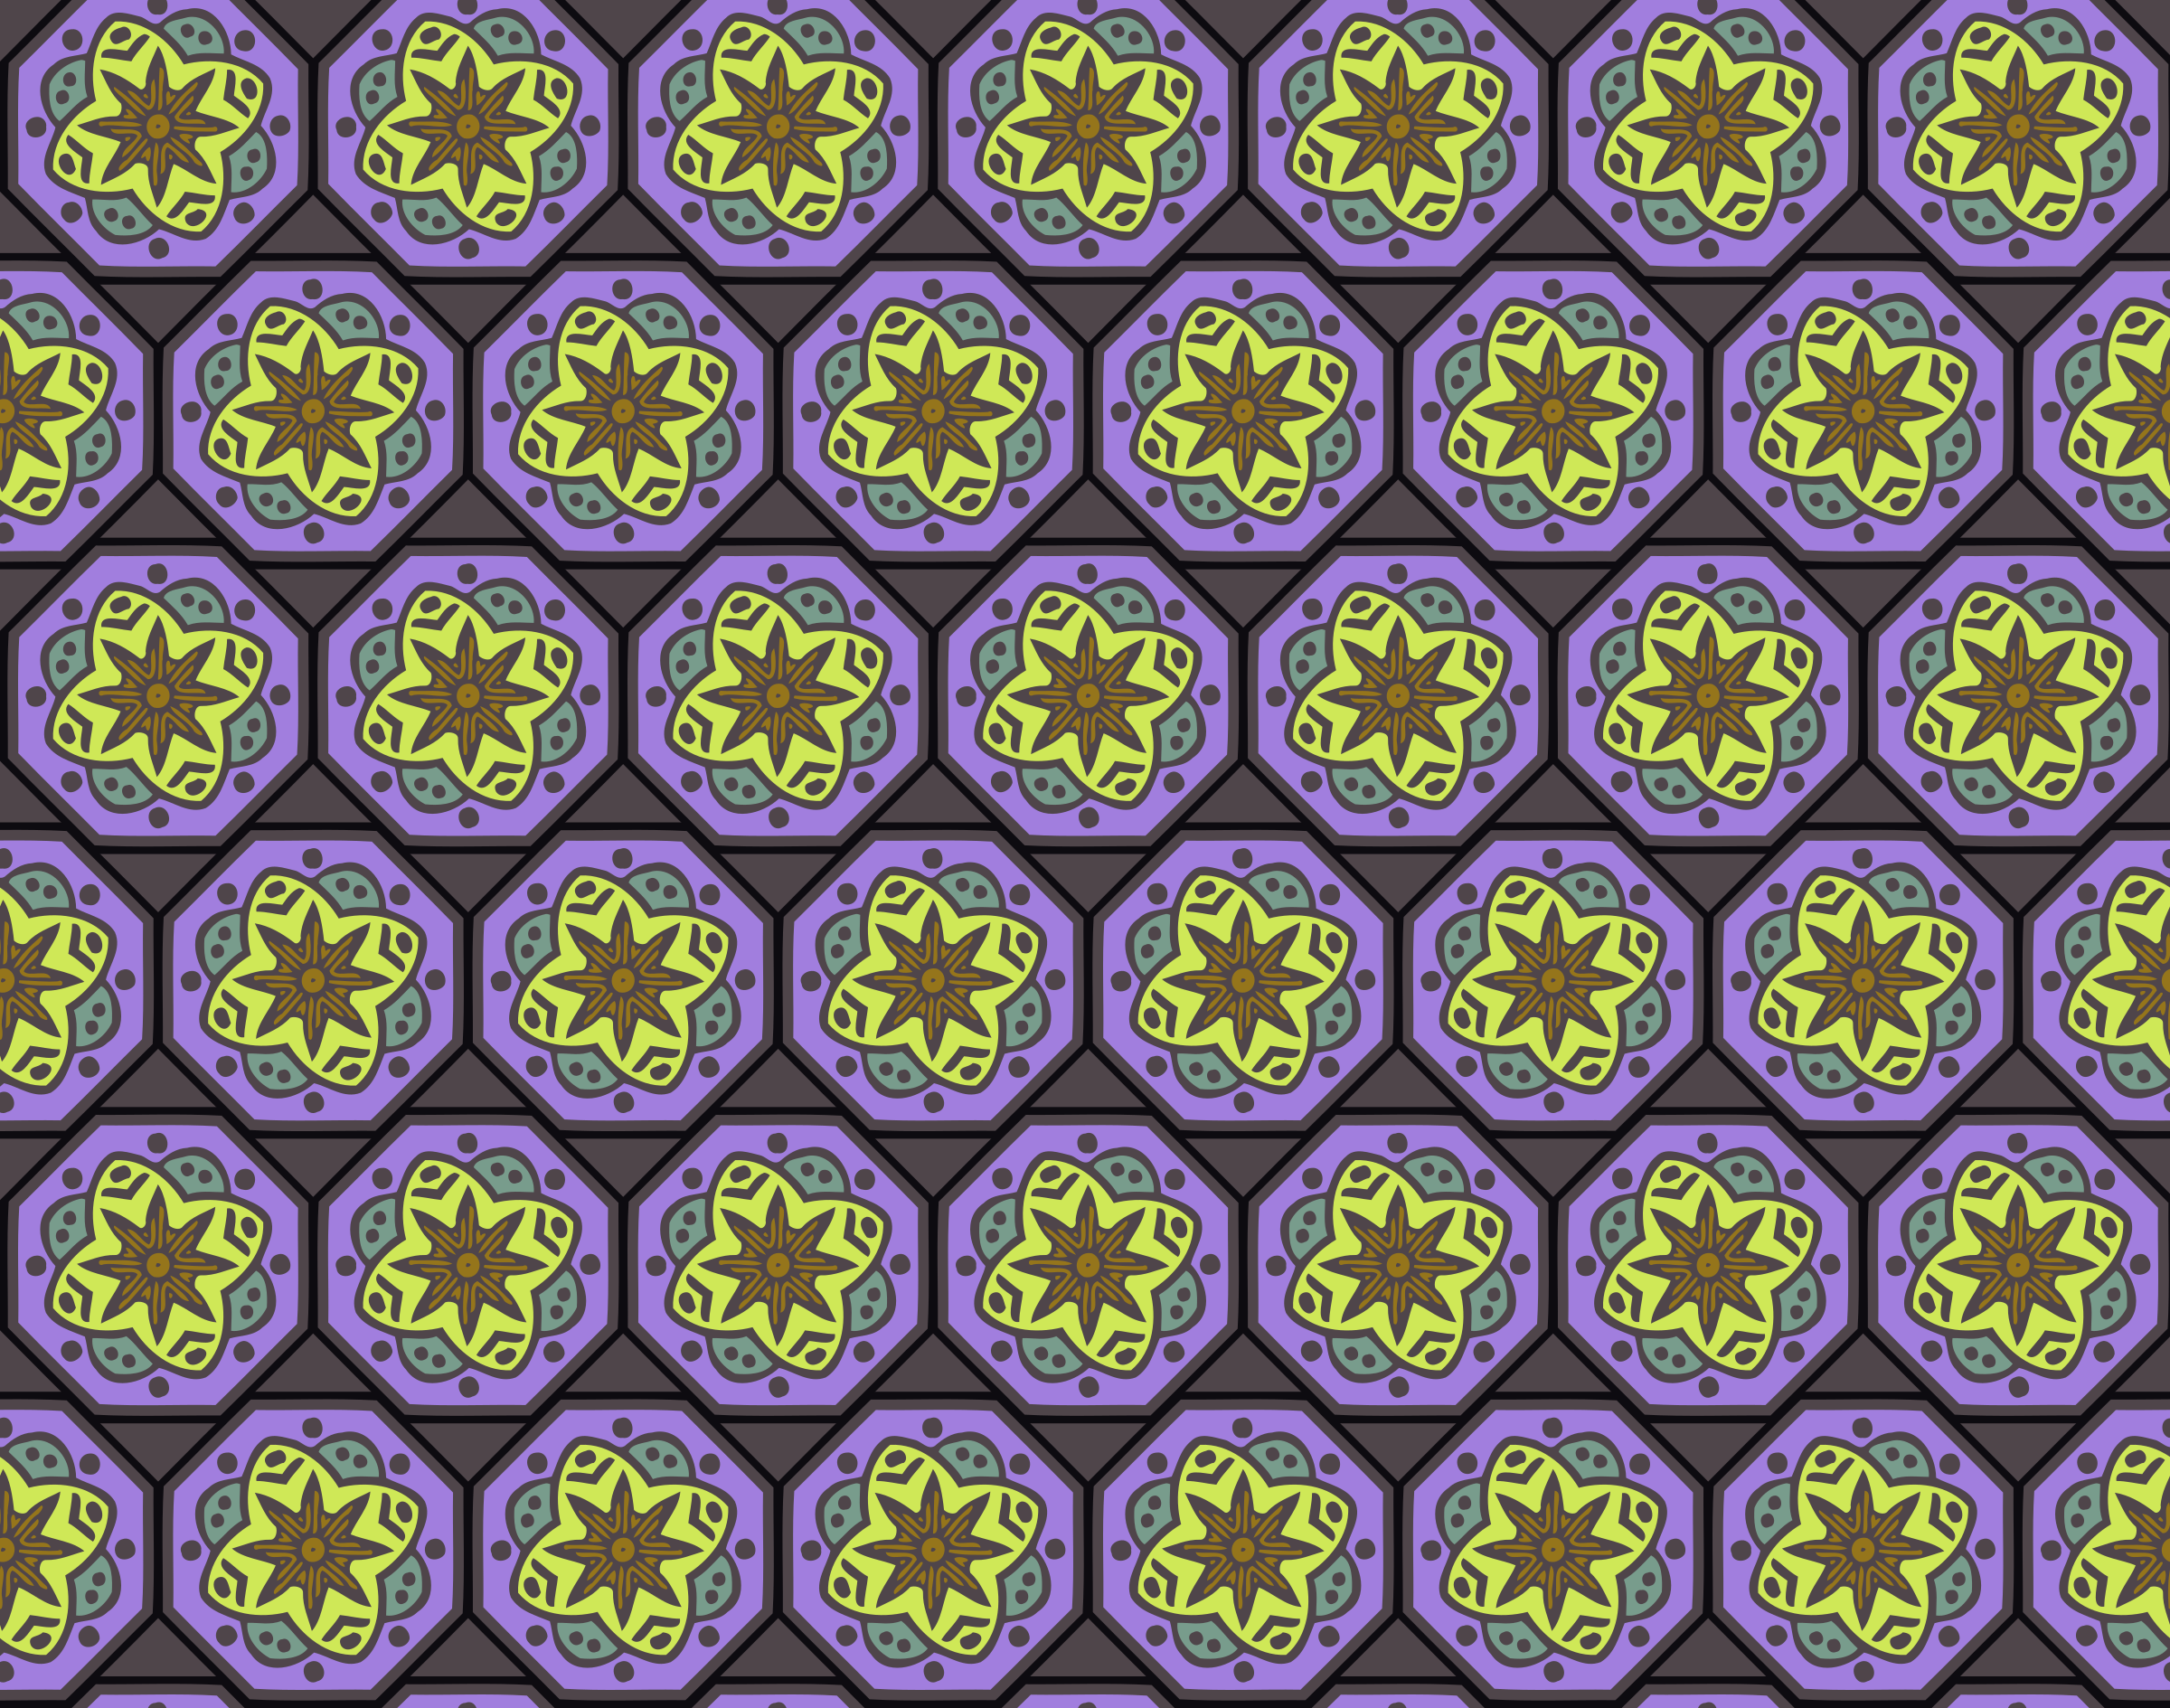 Background pattern 118 (colour 2) by Firkin